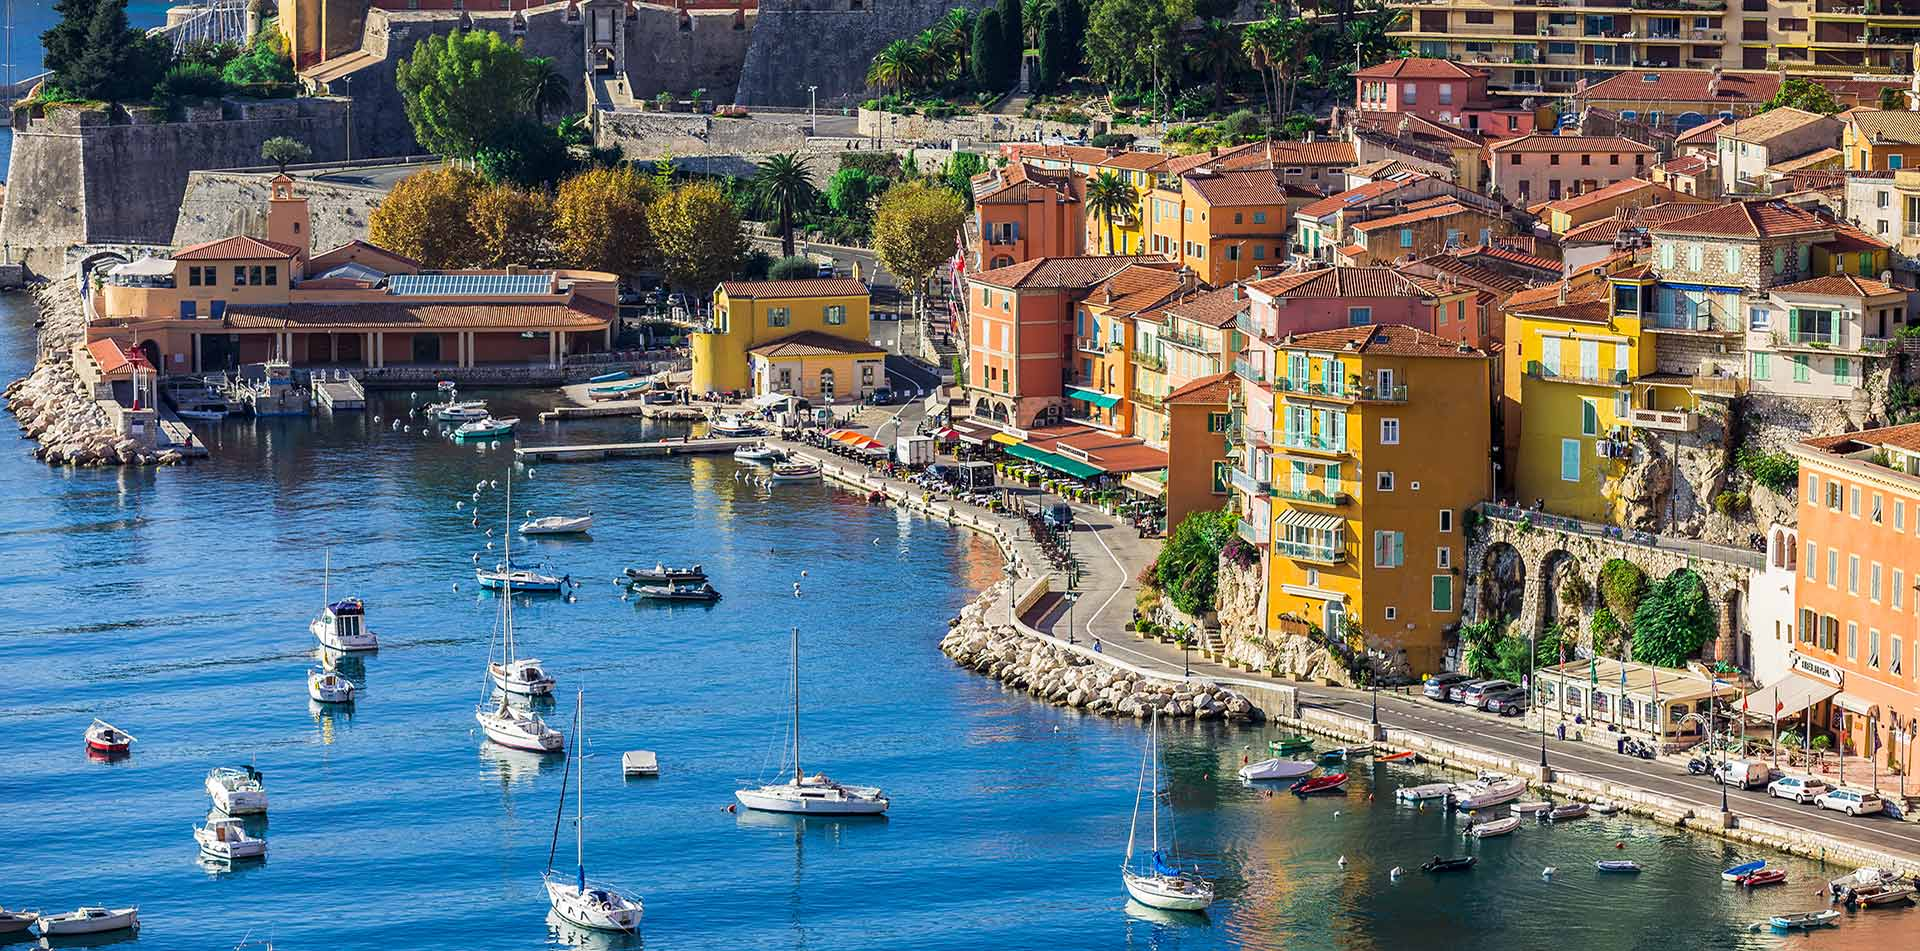 Europe France French Riveria Villafranche-sur-Mer idyllic colorful port town calm blue water - luxury vacation destinations